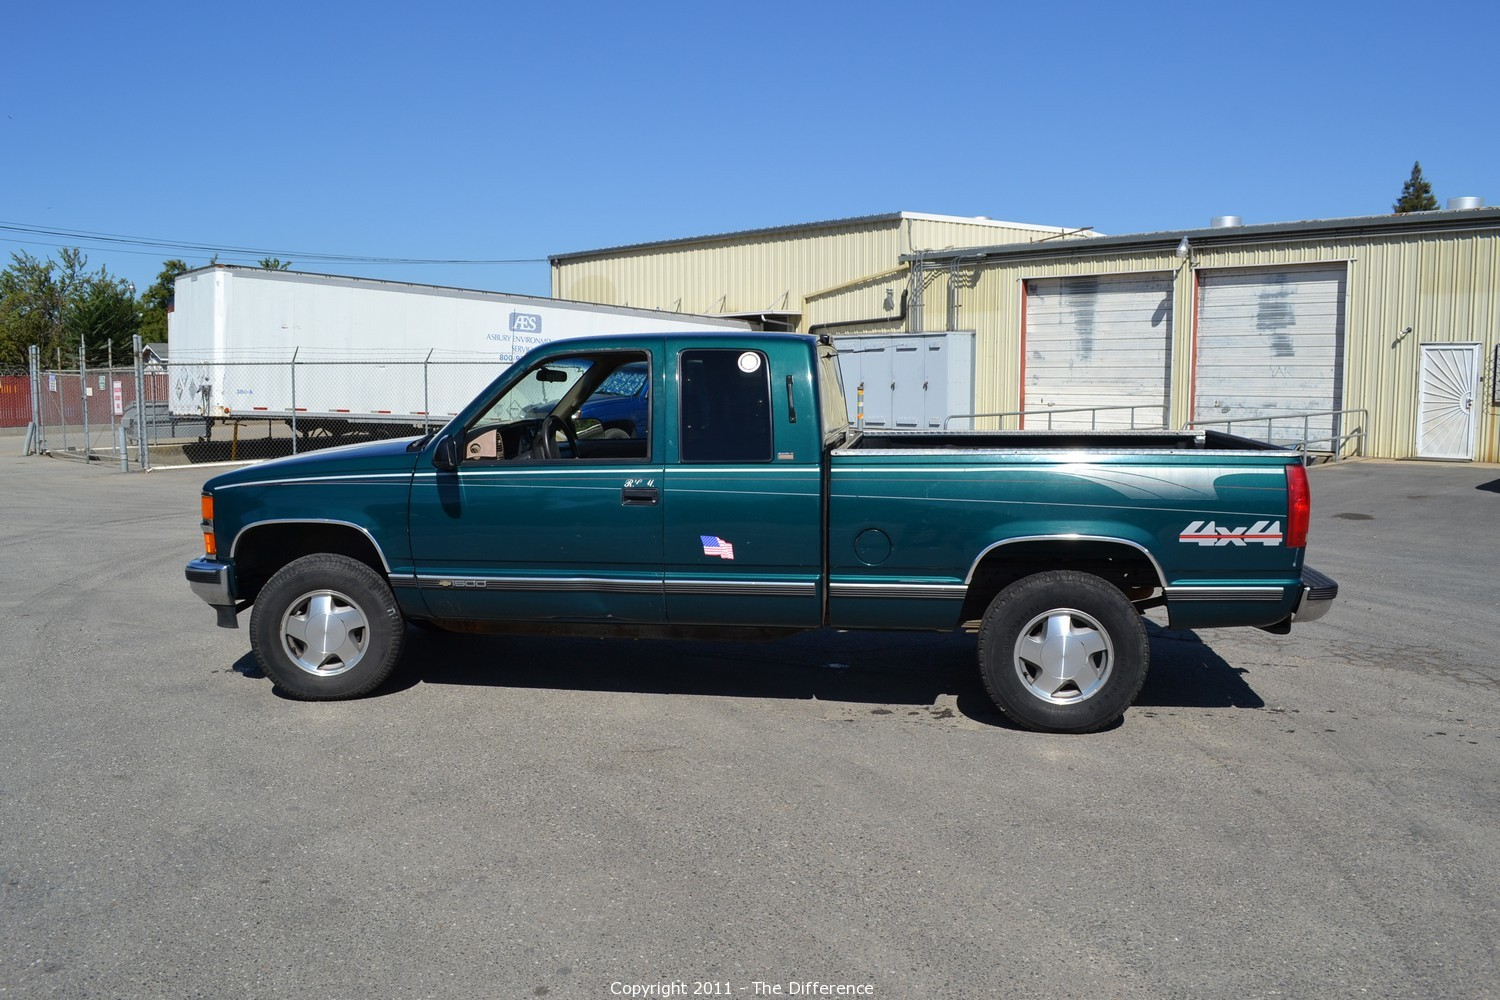 All Chevy chevy 1996 : Pickup » 1996 Chevy Pickup - Old Chevy Photos Collection, All ...